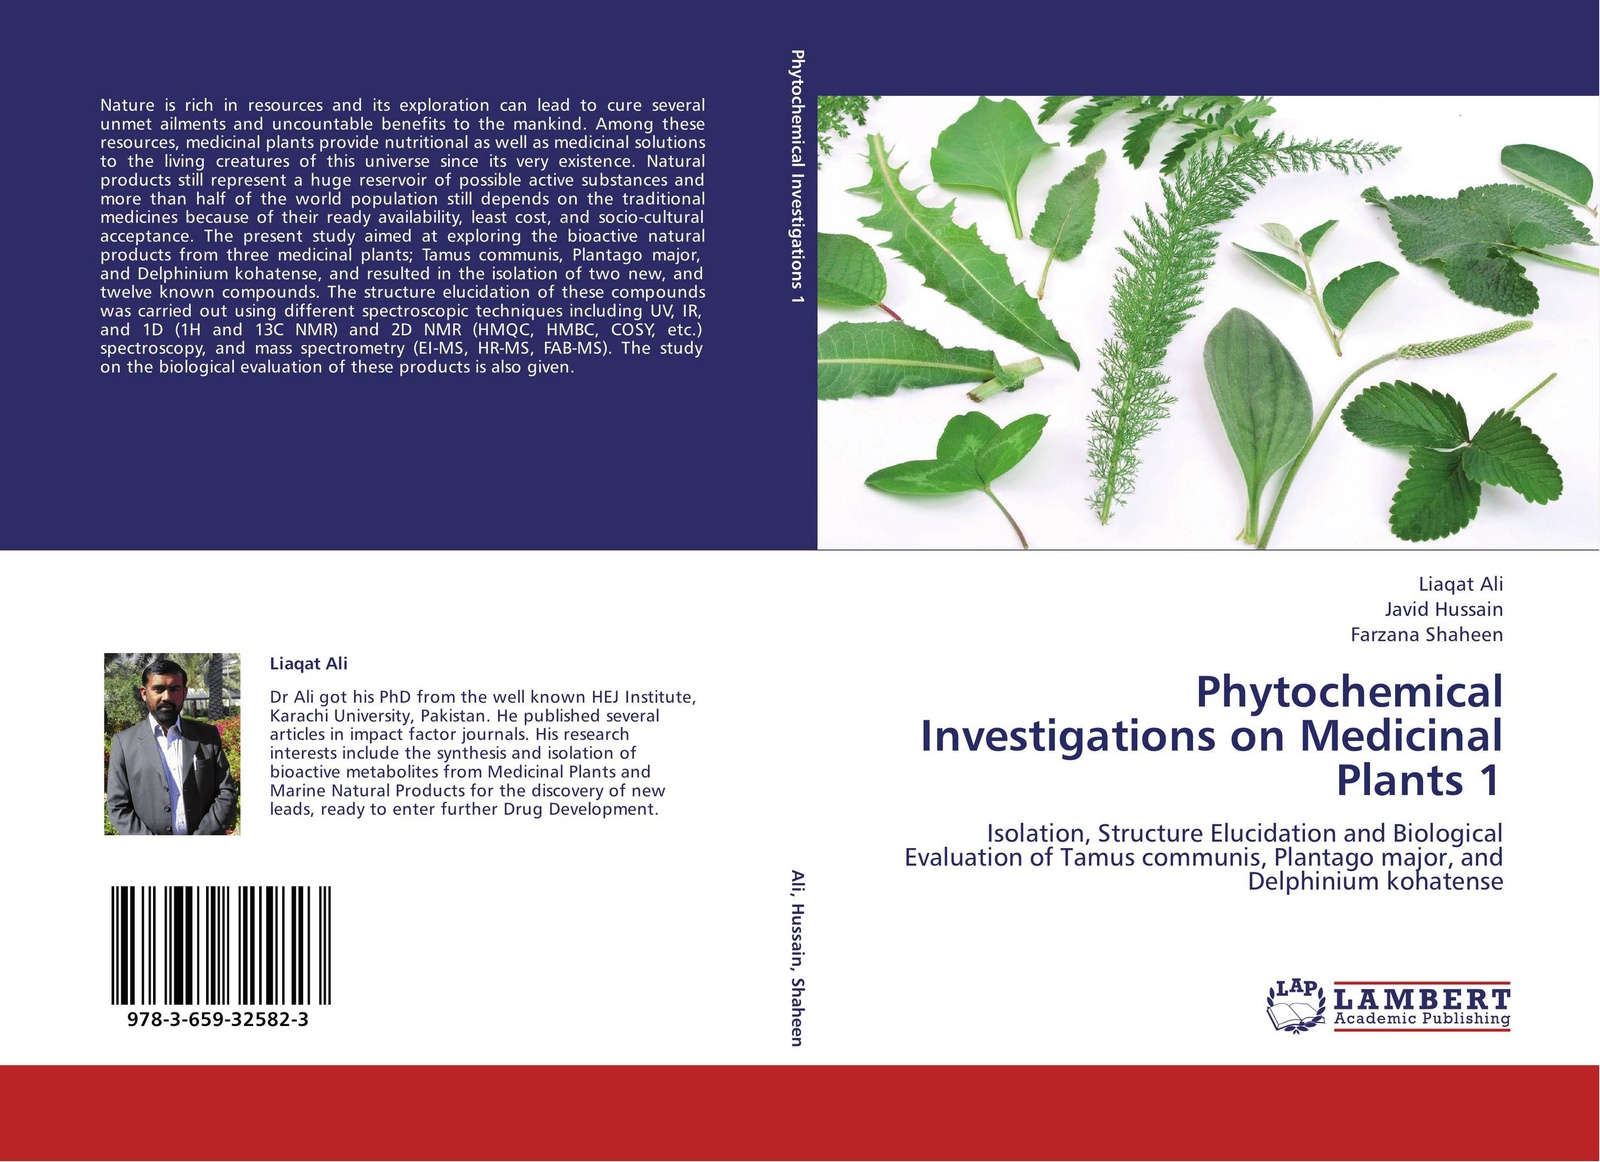 Liaqat Ali,Javid Hussain and Farzana Shaheen Phytochemical Investigations on Medicinal Plants 1 цена